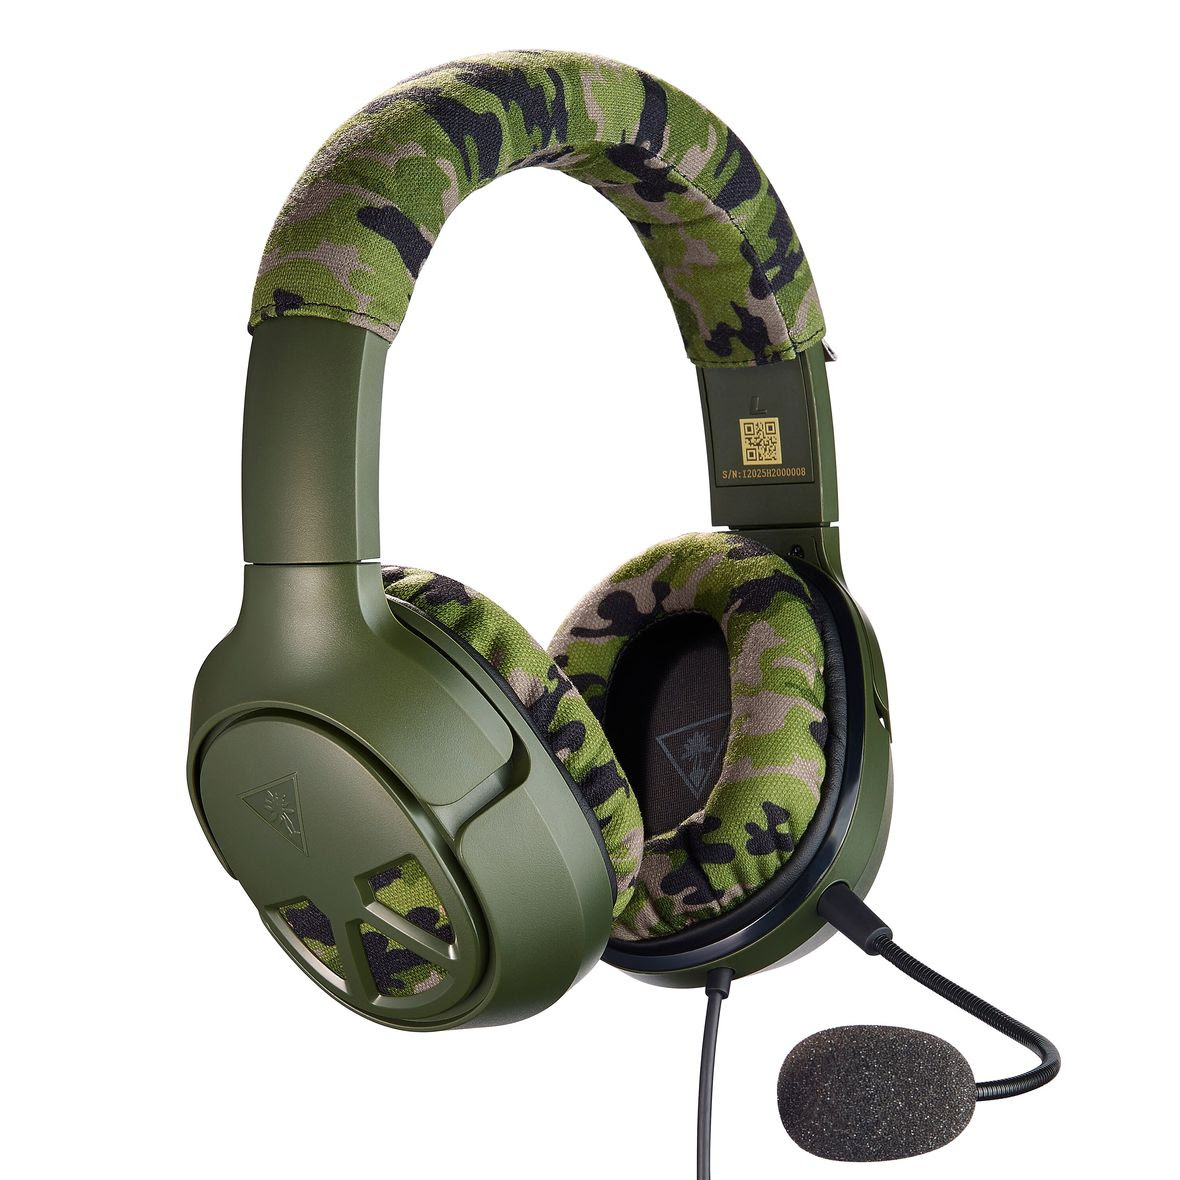 What Is The Best Turtle Beach Headset For Ps